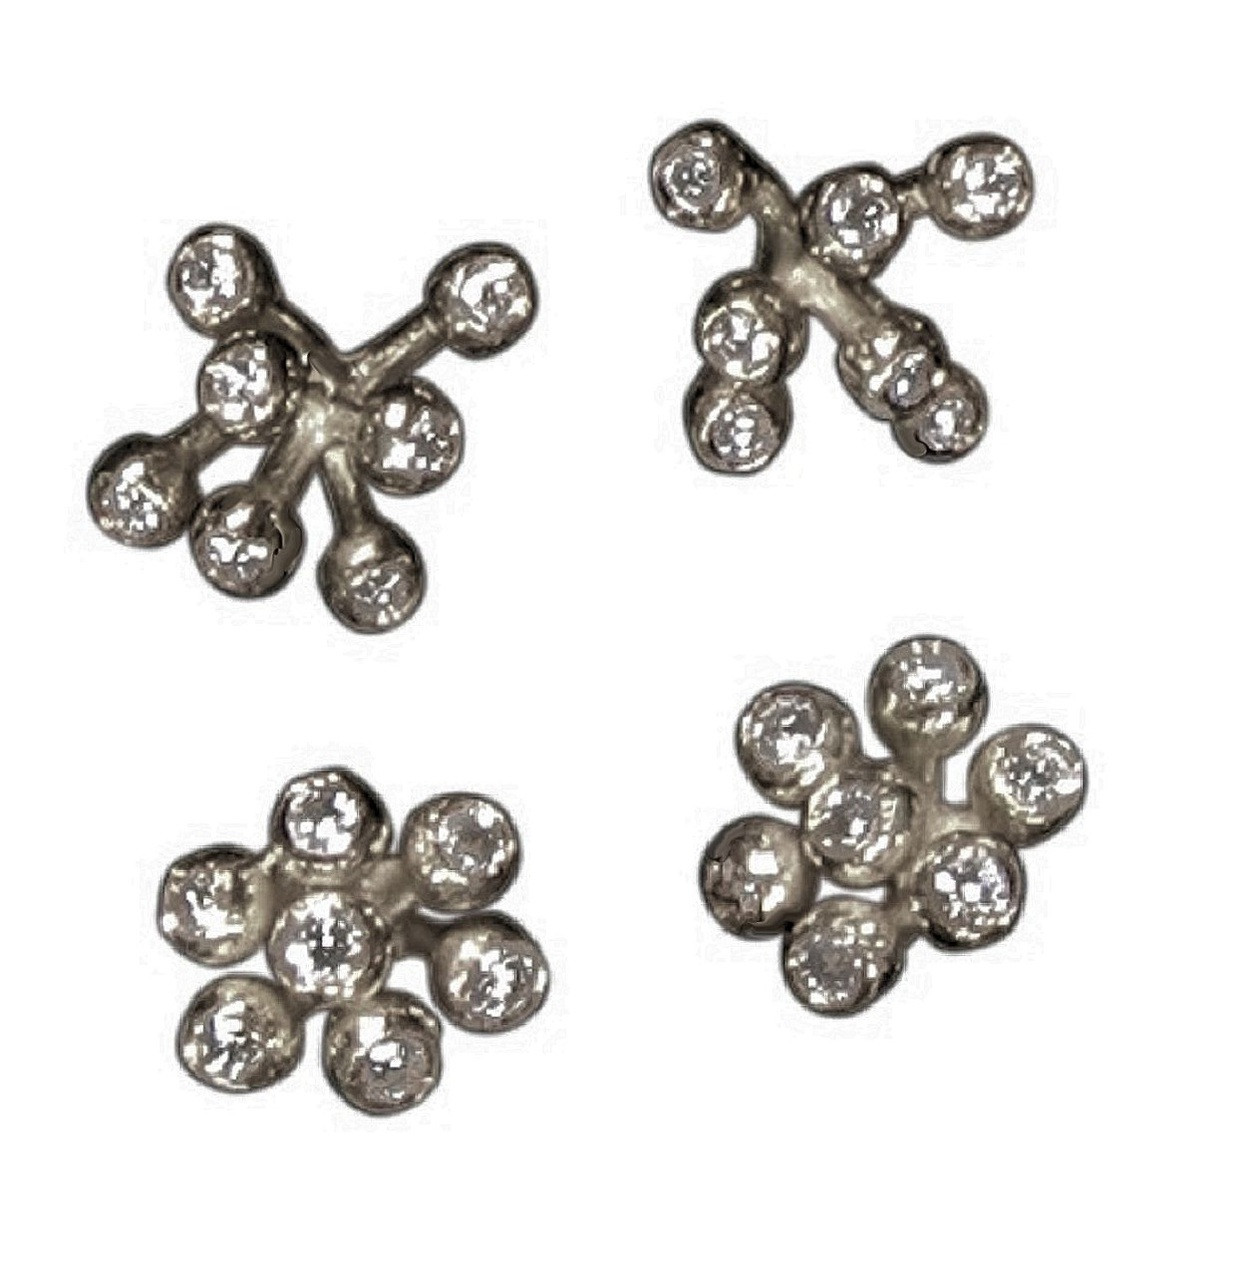 Fireworks-7 Earrings-Sterling Silver with diamonds - plate options